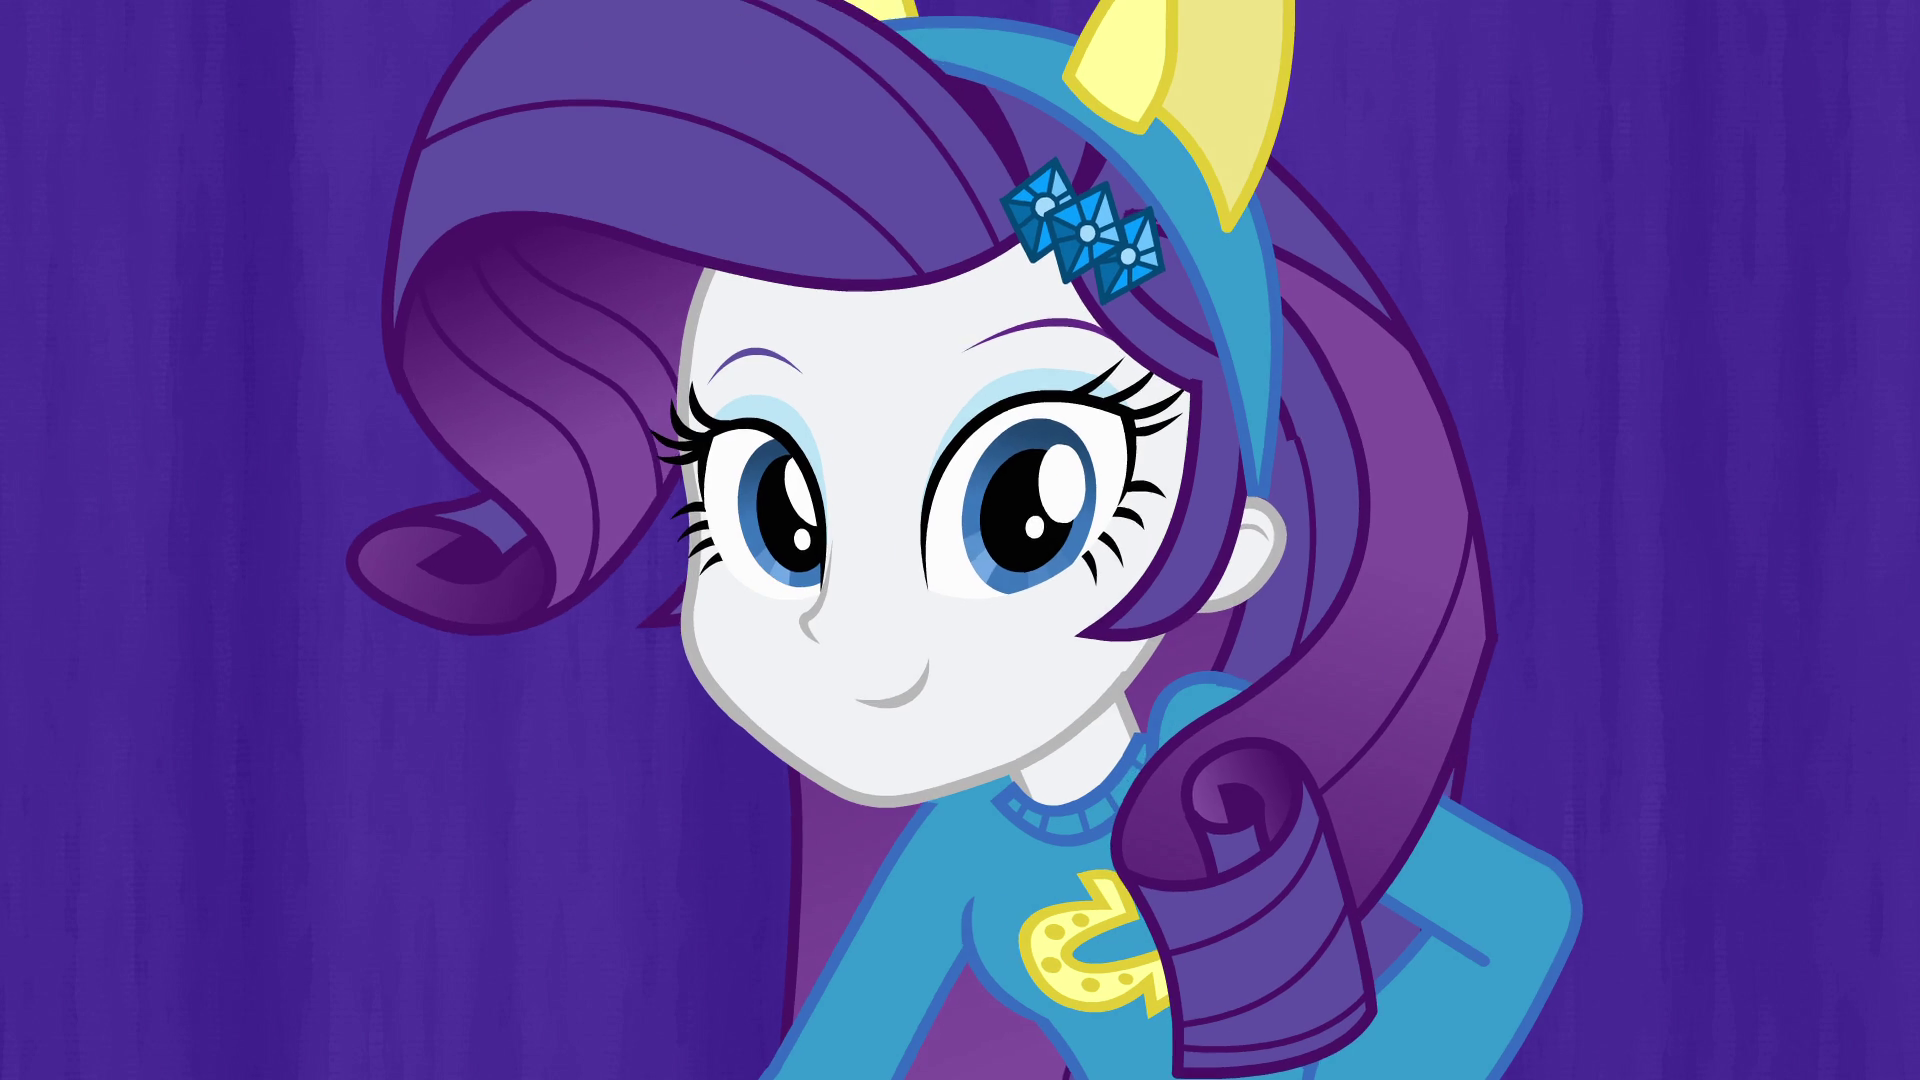 Image result for mlp adorable pony ears""